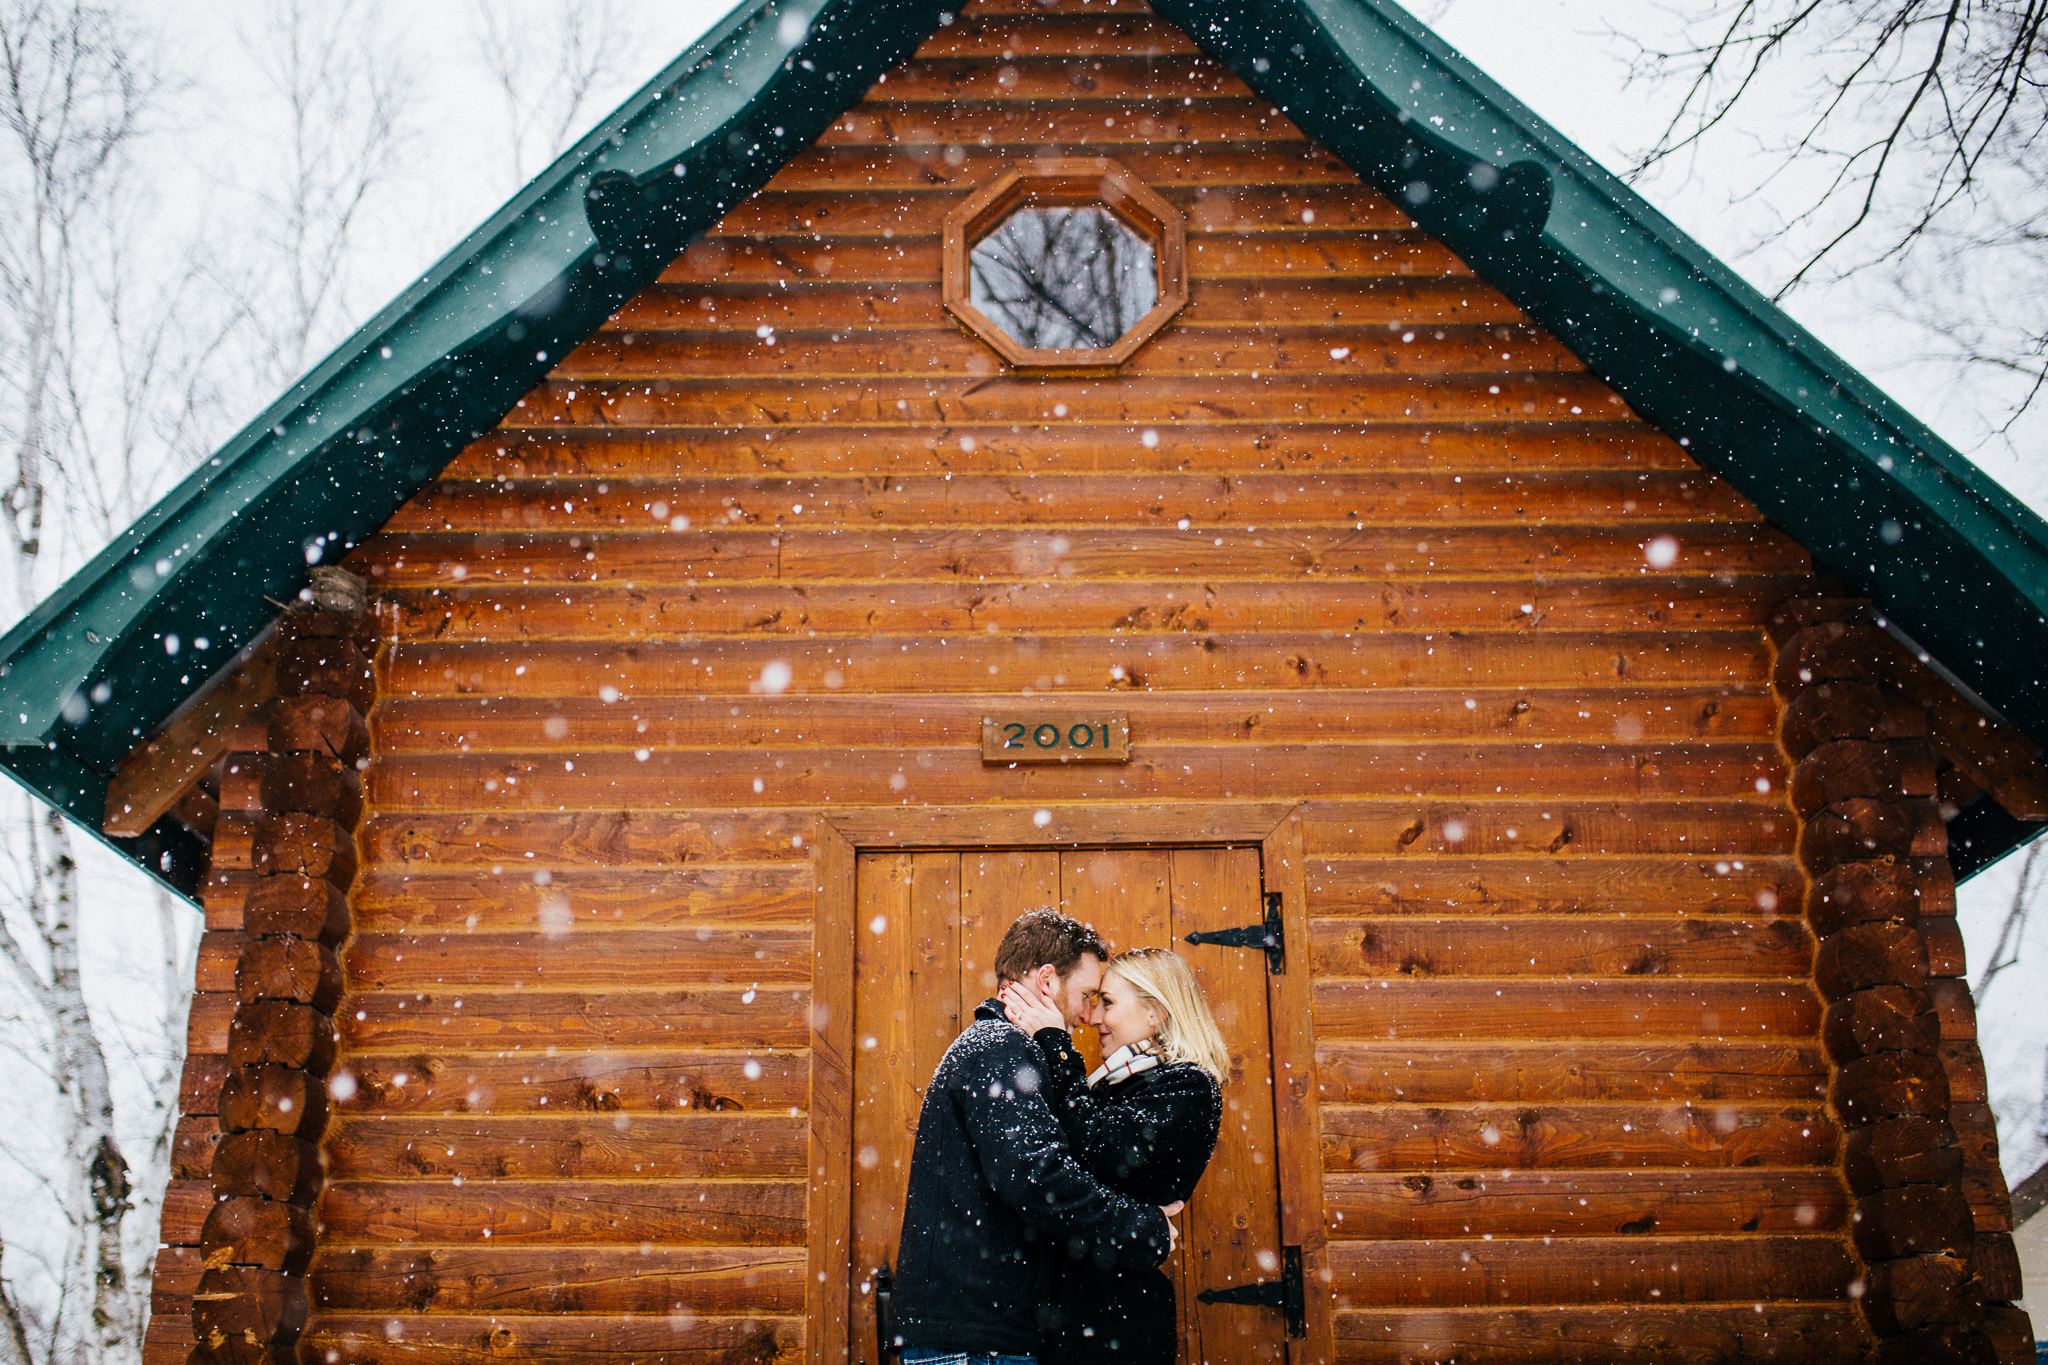 paige-lee-winter-engagement-st-cloud-minnesota-wedding-photographer-snow-wood-cabin-0231.jpg